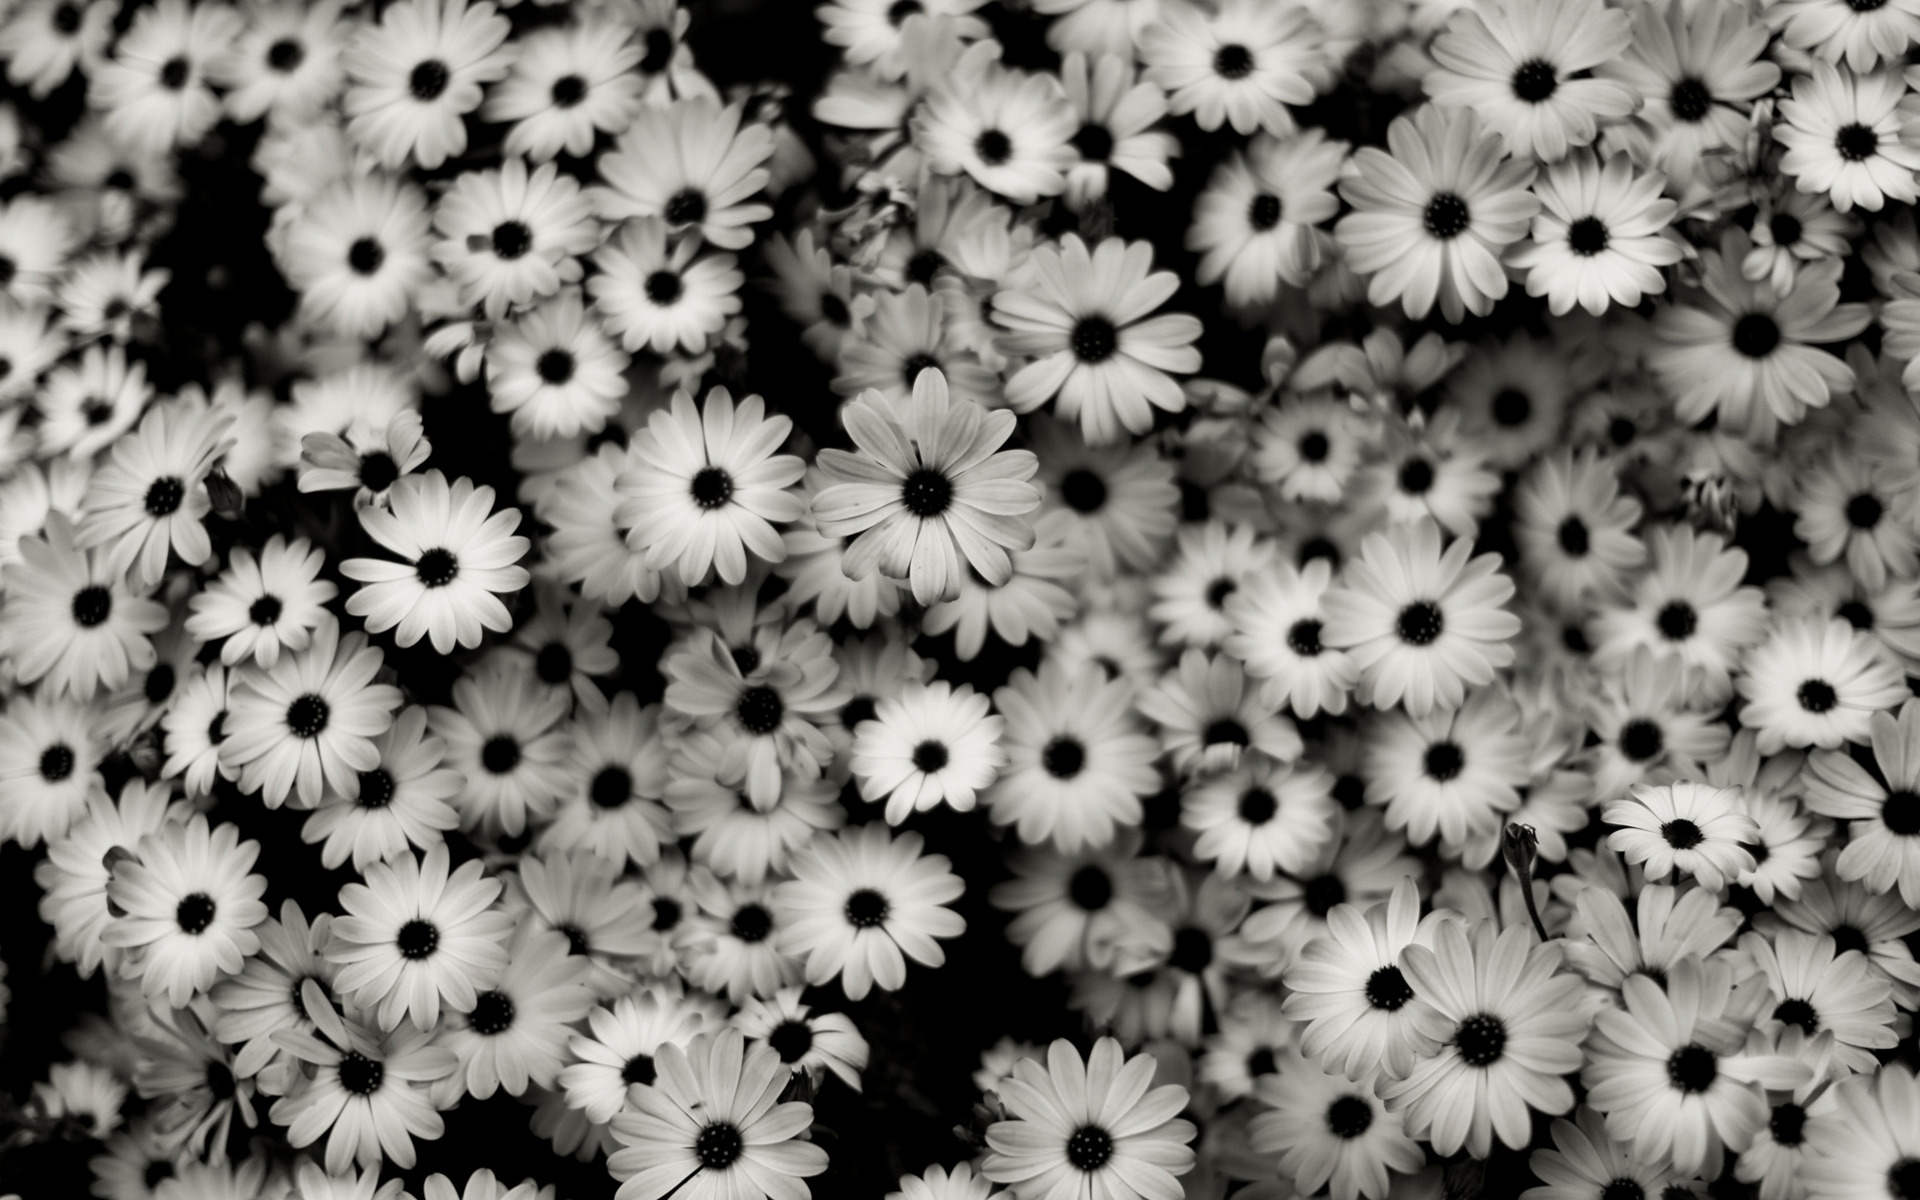 Black and white flowers wallpapers and images   wallpapers pictures 1920x1200